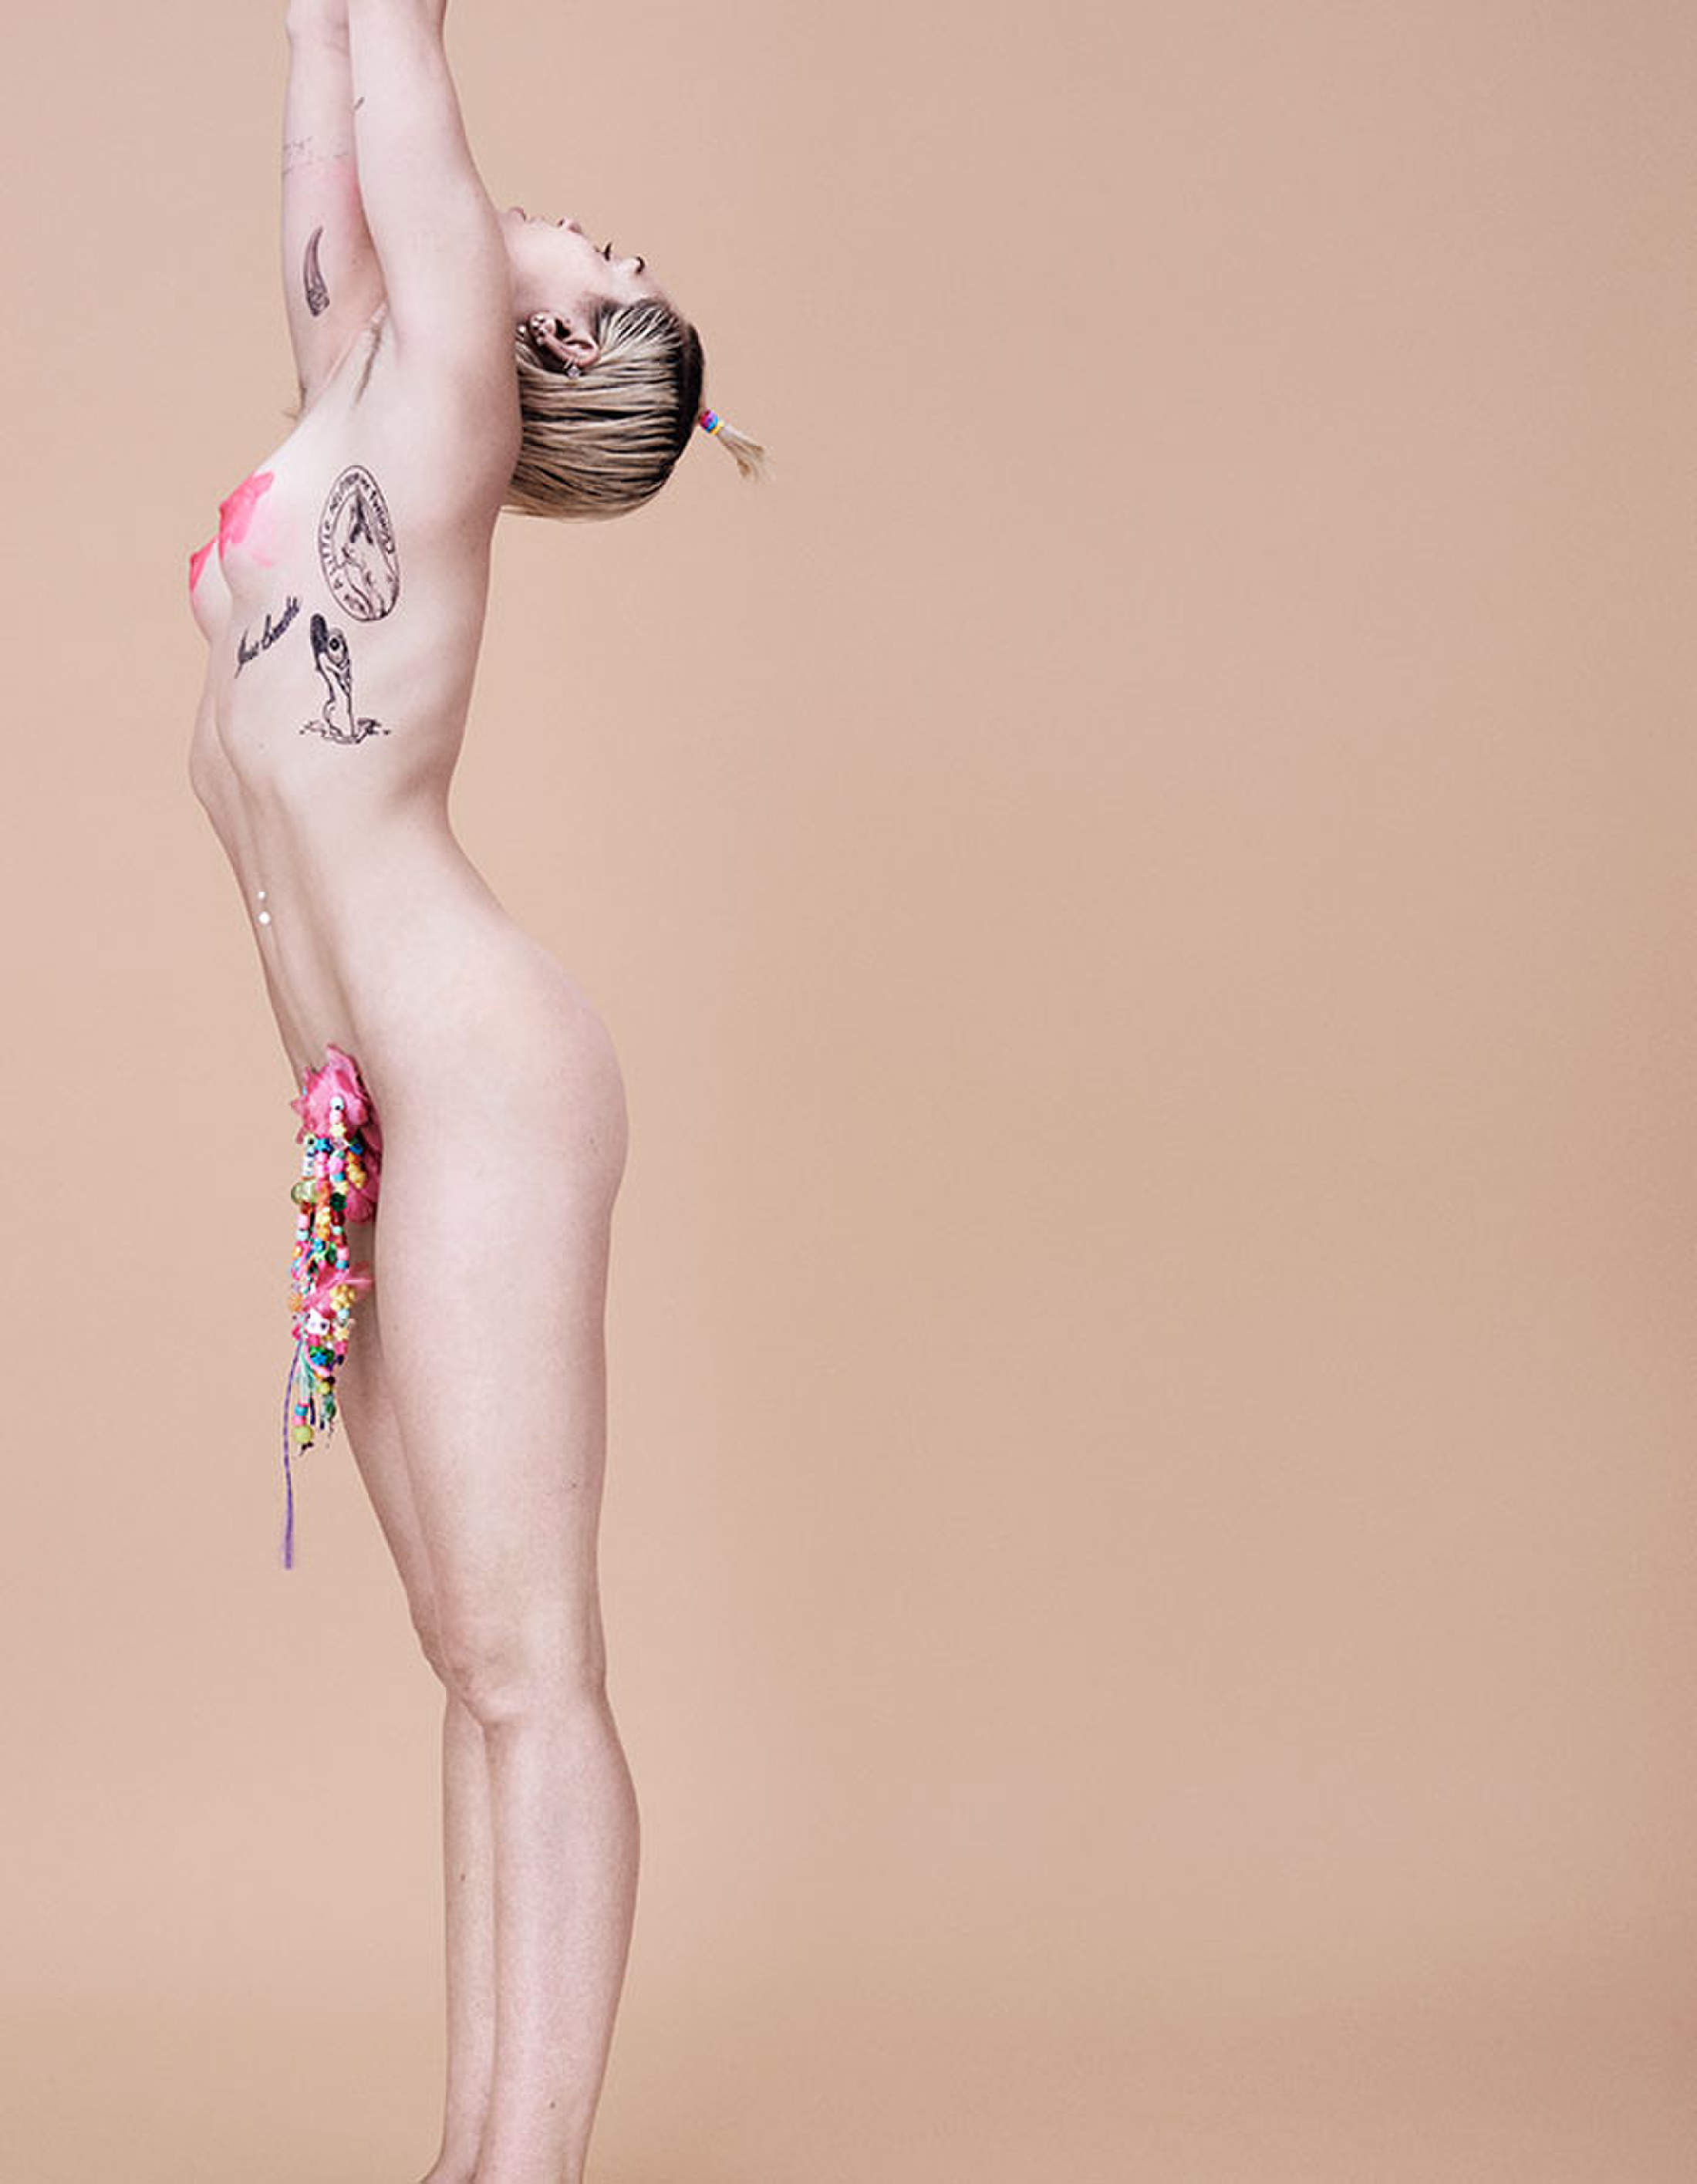 Miley Cyrus Poses Nude for Paper Magazine | 195493 | Photos | The ...: theblemish.com/photos/miley-cyrus-poses-nude-for-paper-magazine...